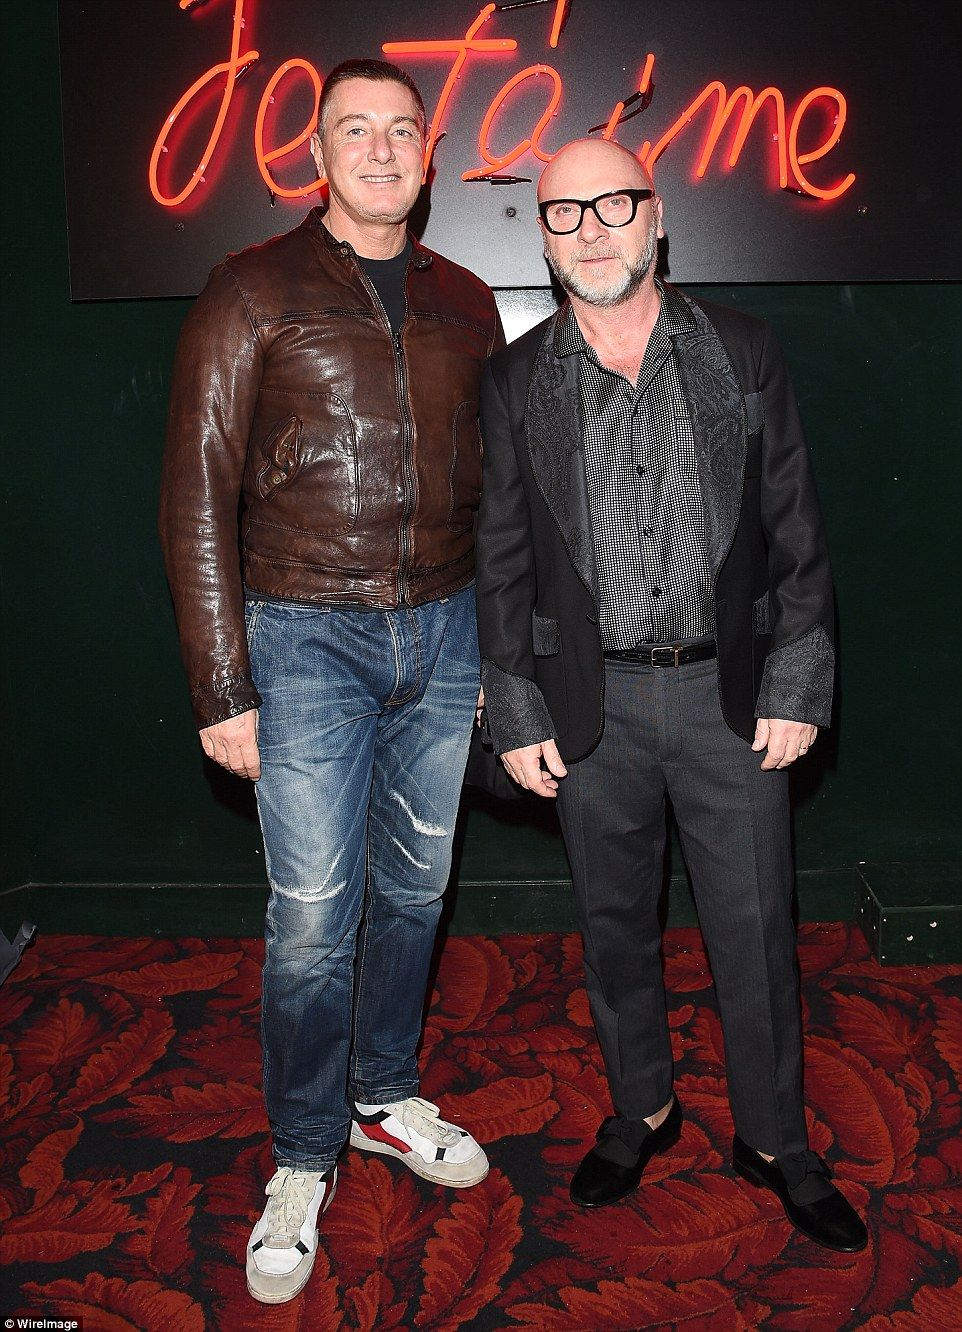 35b29a14816 Two's company: Designer Stefano Gabbana and his professional partner Domenico  Dolce attend 'Paris Je T'aime' party in Paris